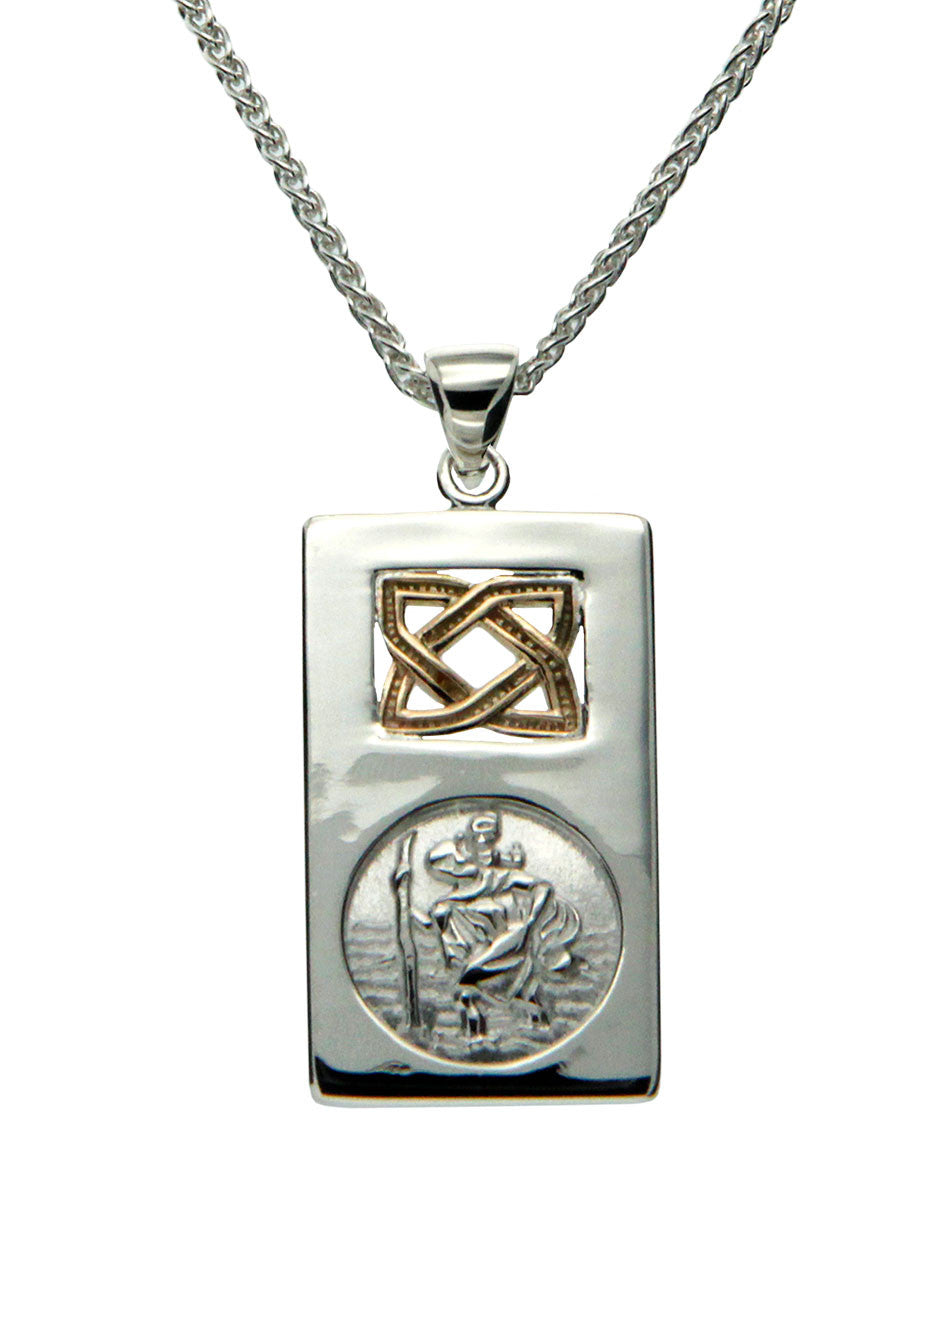 Saint Christopher Pendant - Sterling Silver & 10k Gold - Large